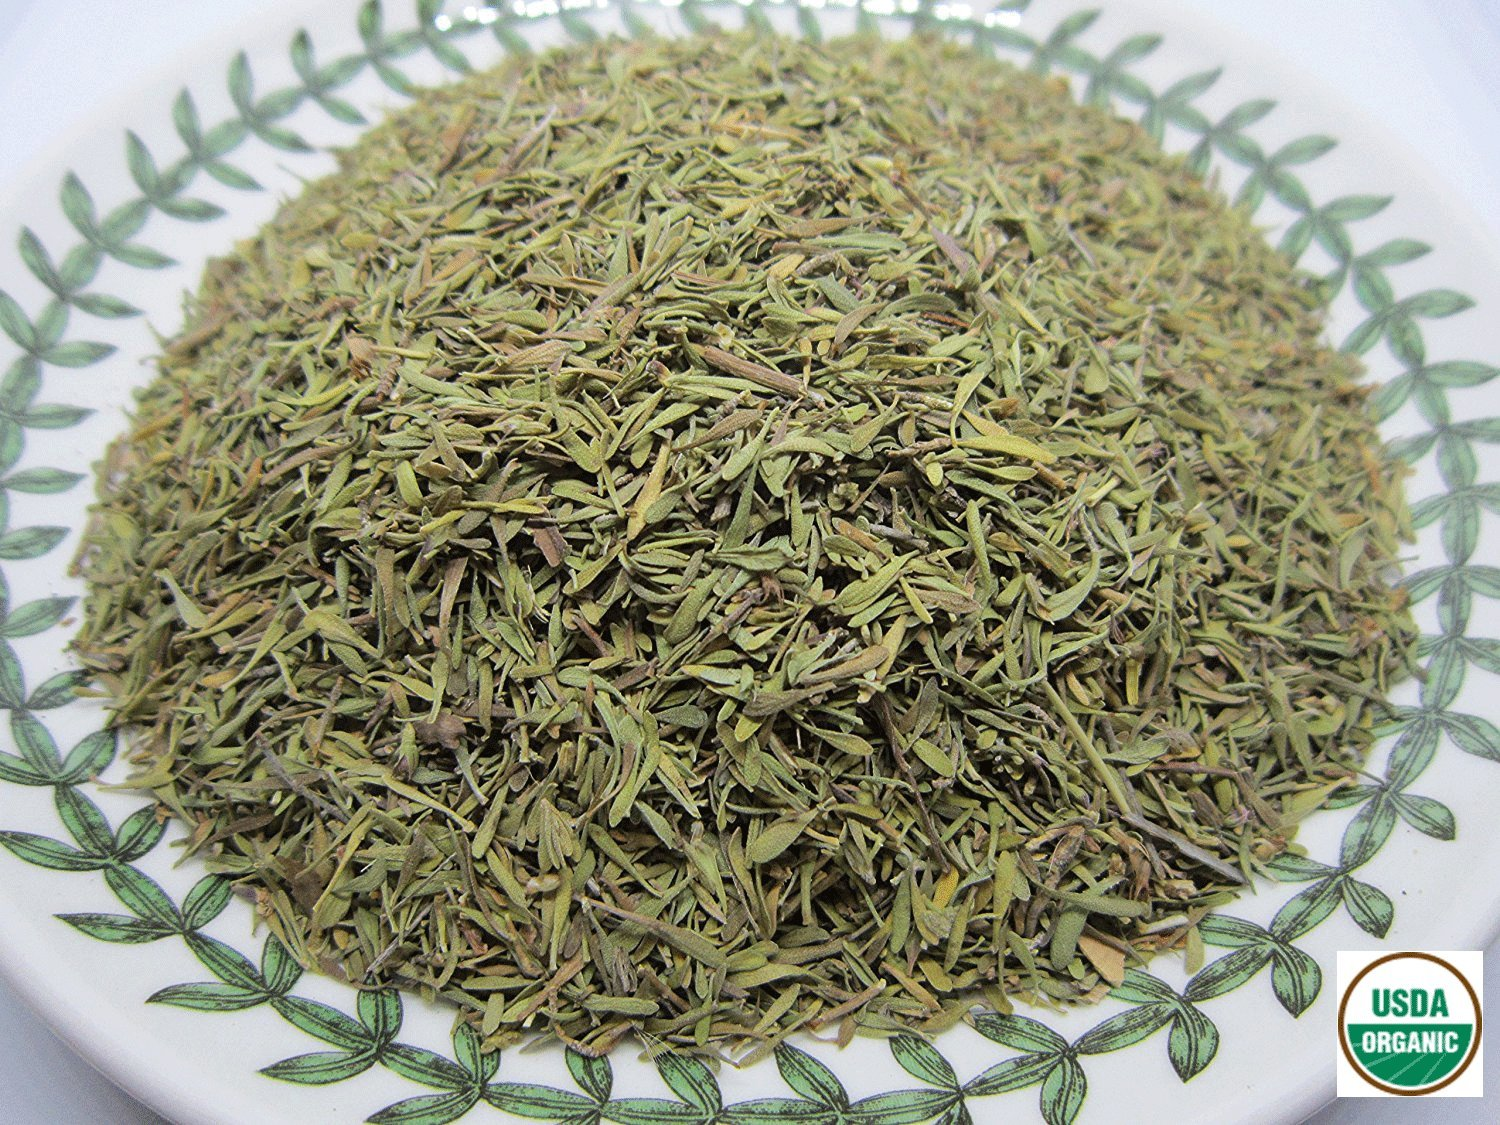 Organic Thyme Leaf - Thymus vulgaris Dried Loose Leaf by Nature Tea (02 oz)